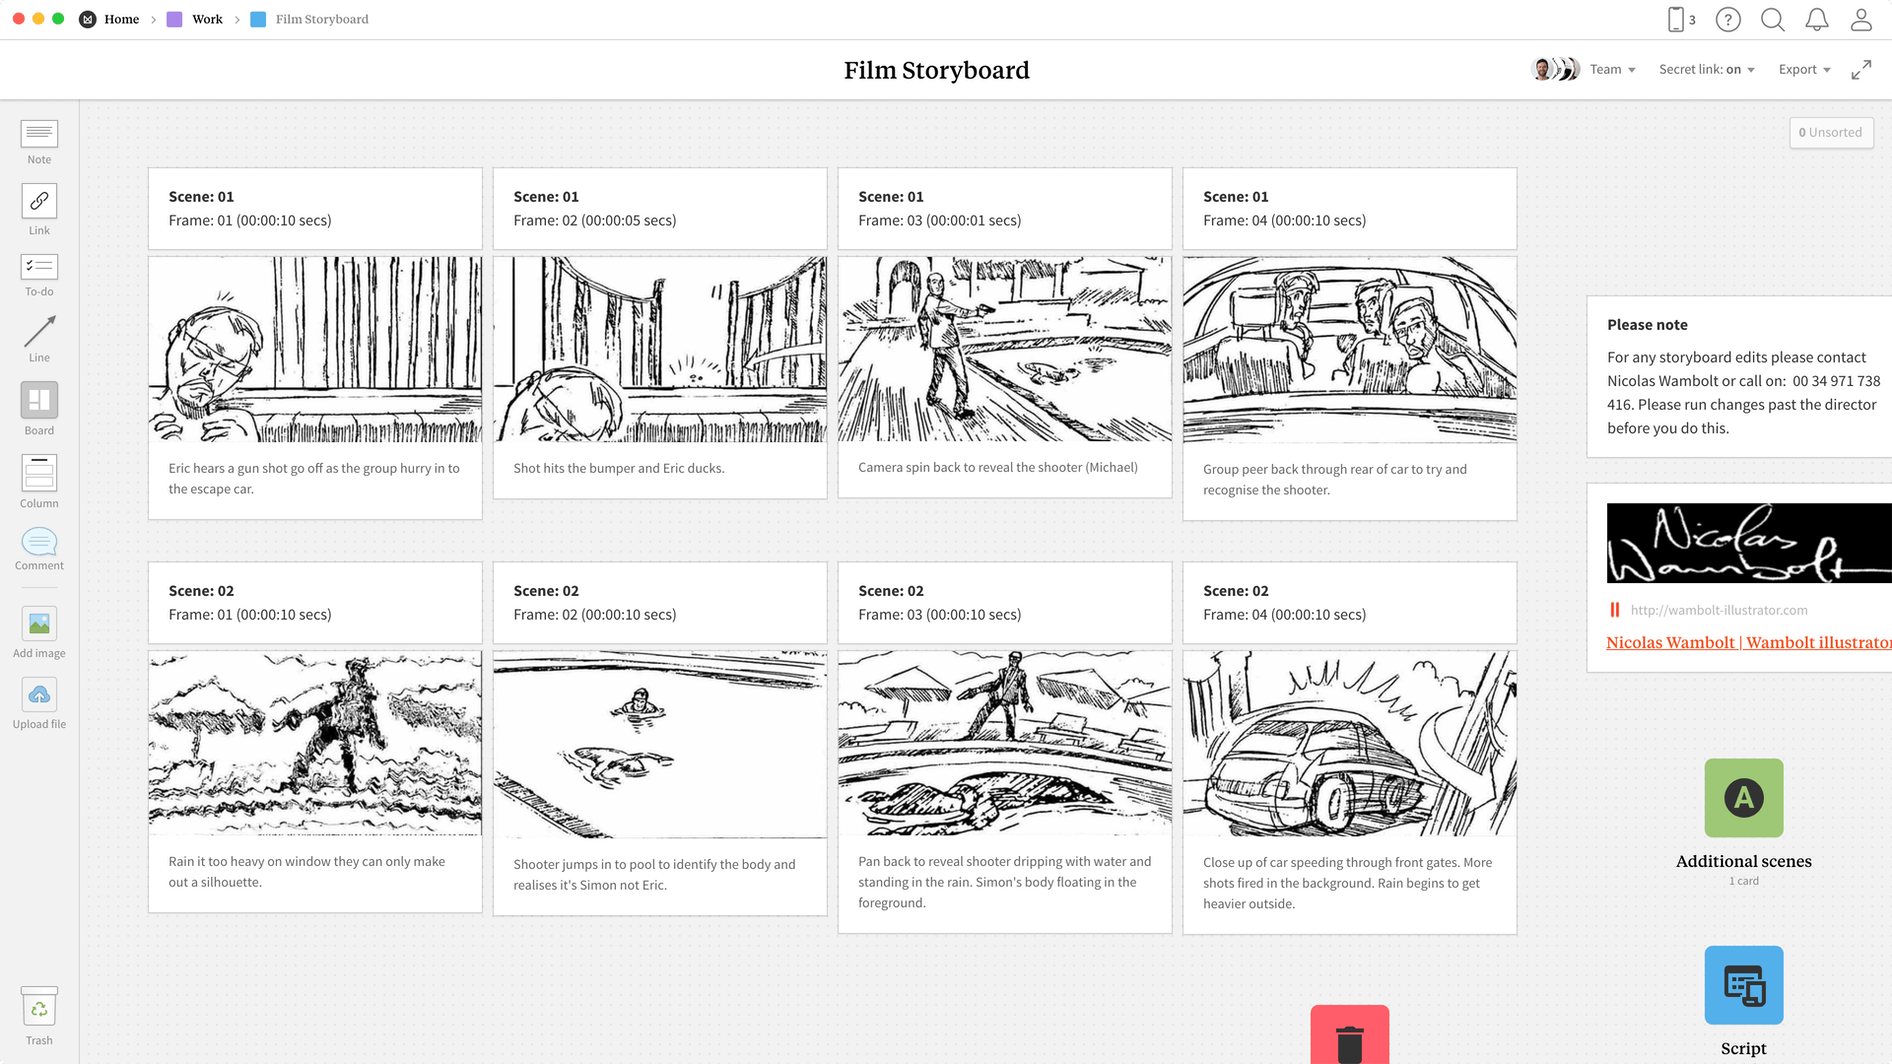 Filmmaking Storyboard Template, within the Milanote app